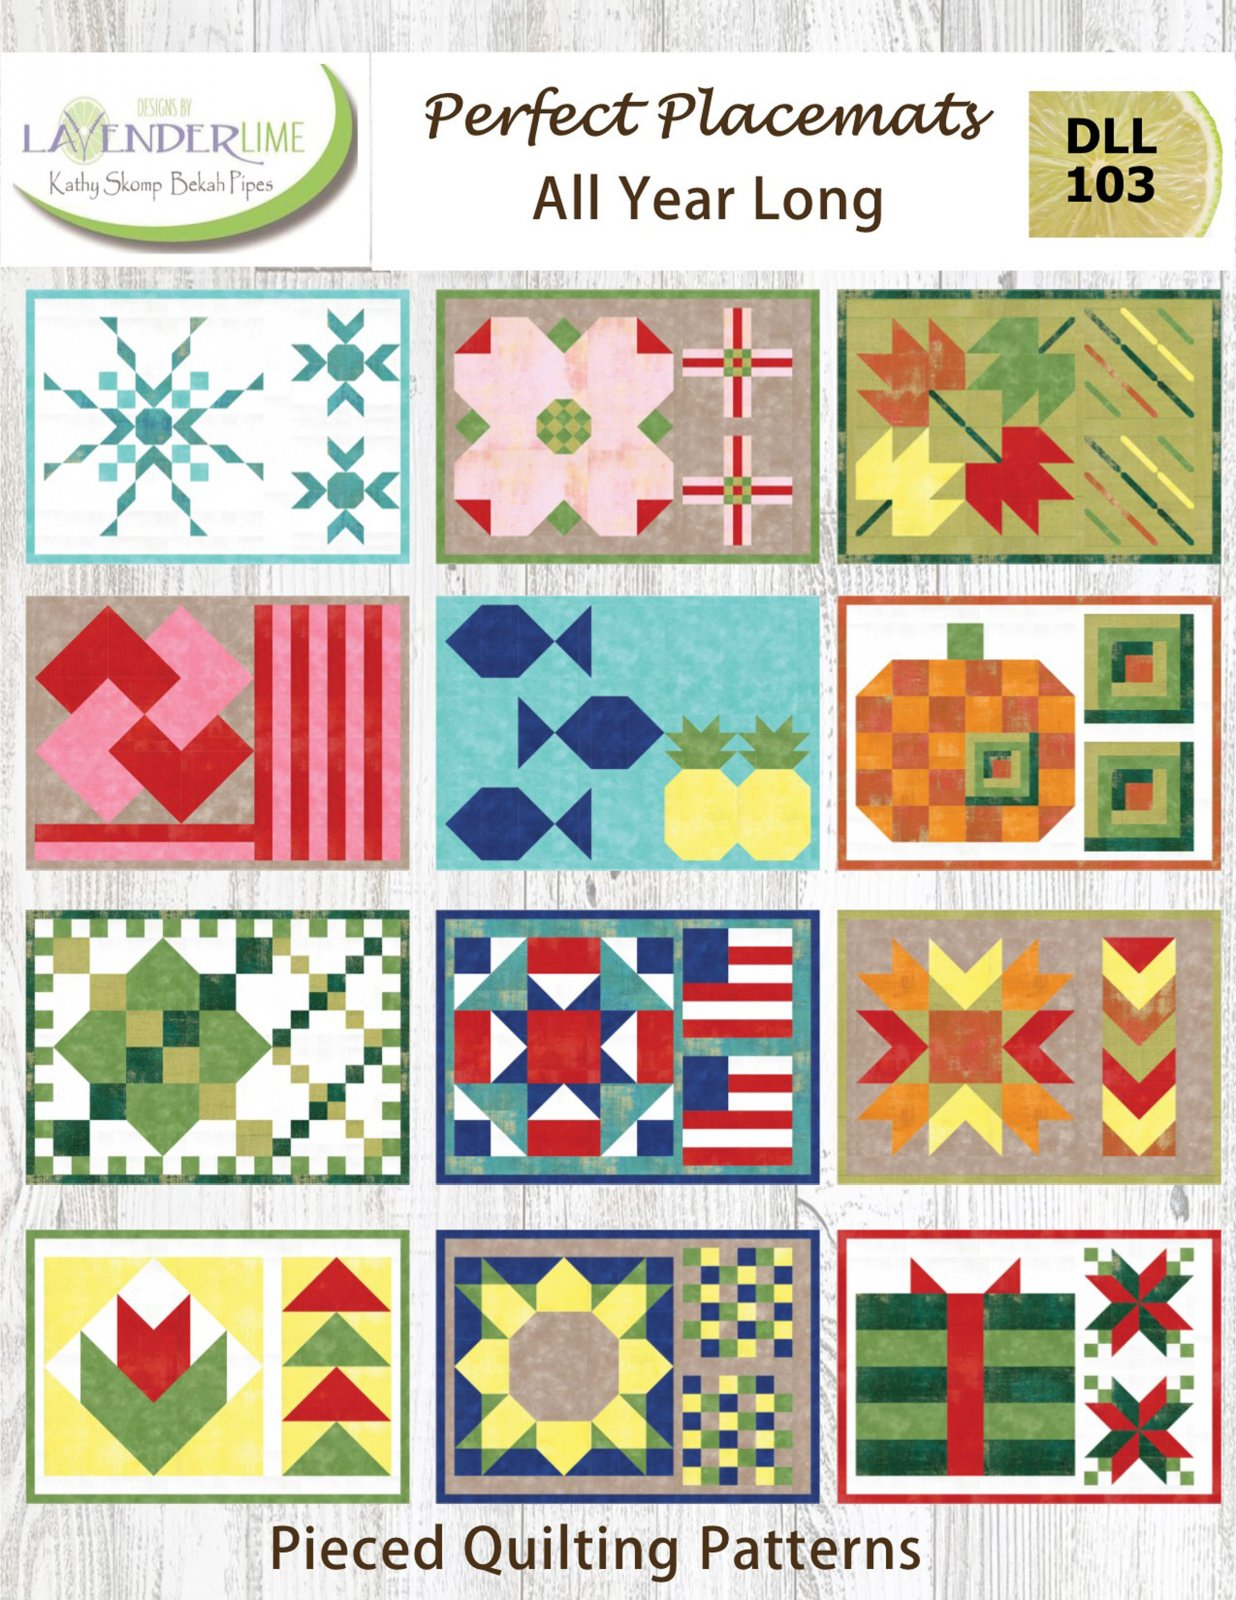 Perfect Placemats All Year Long PDF Download